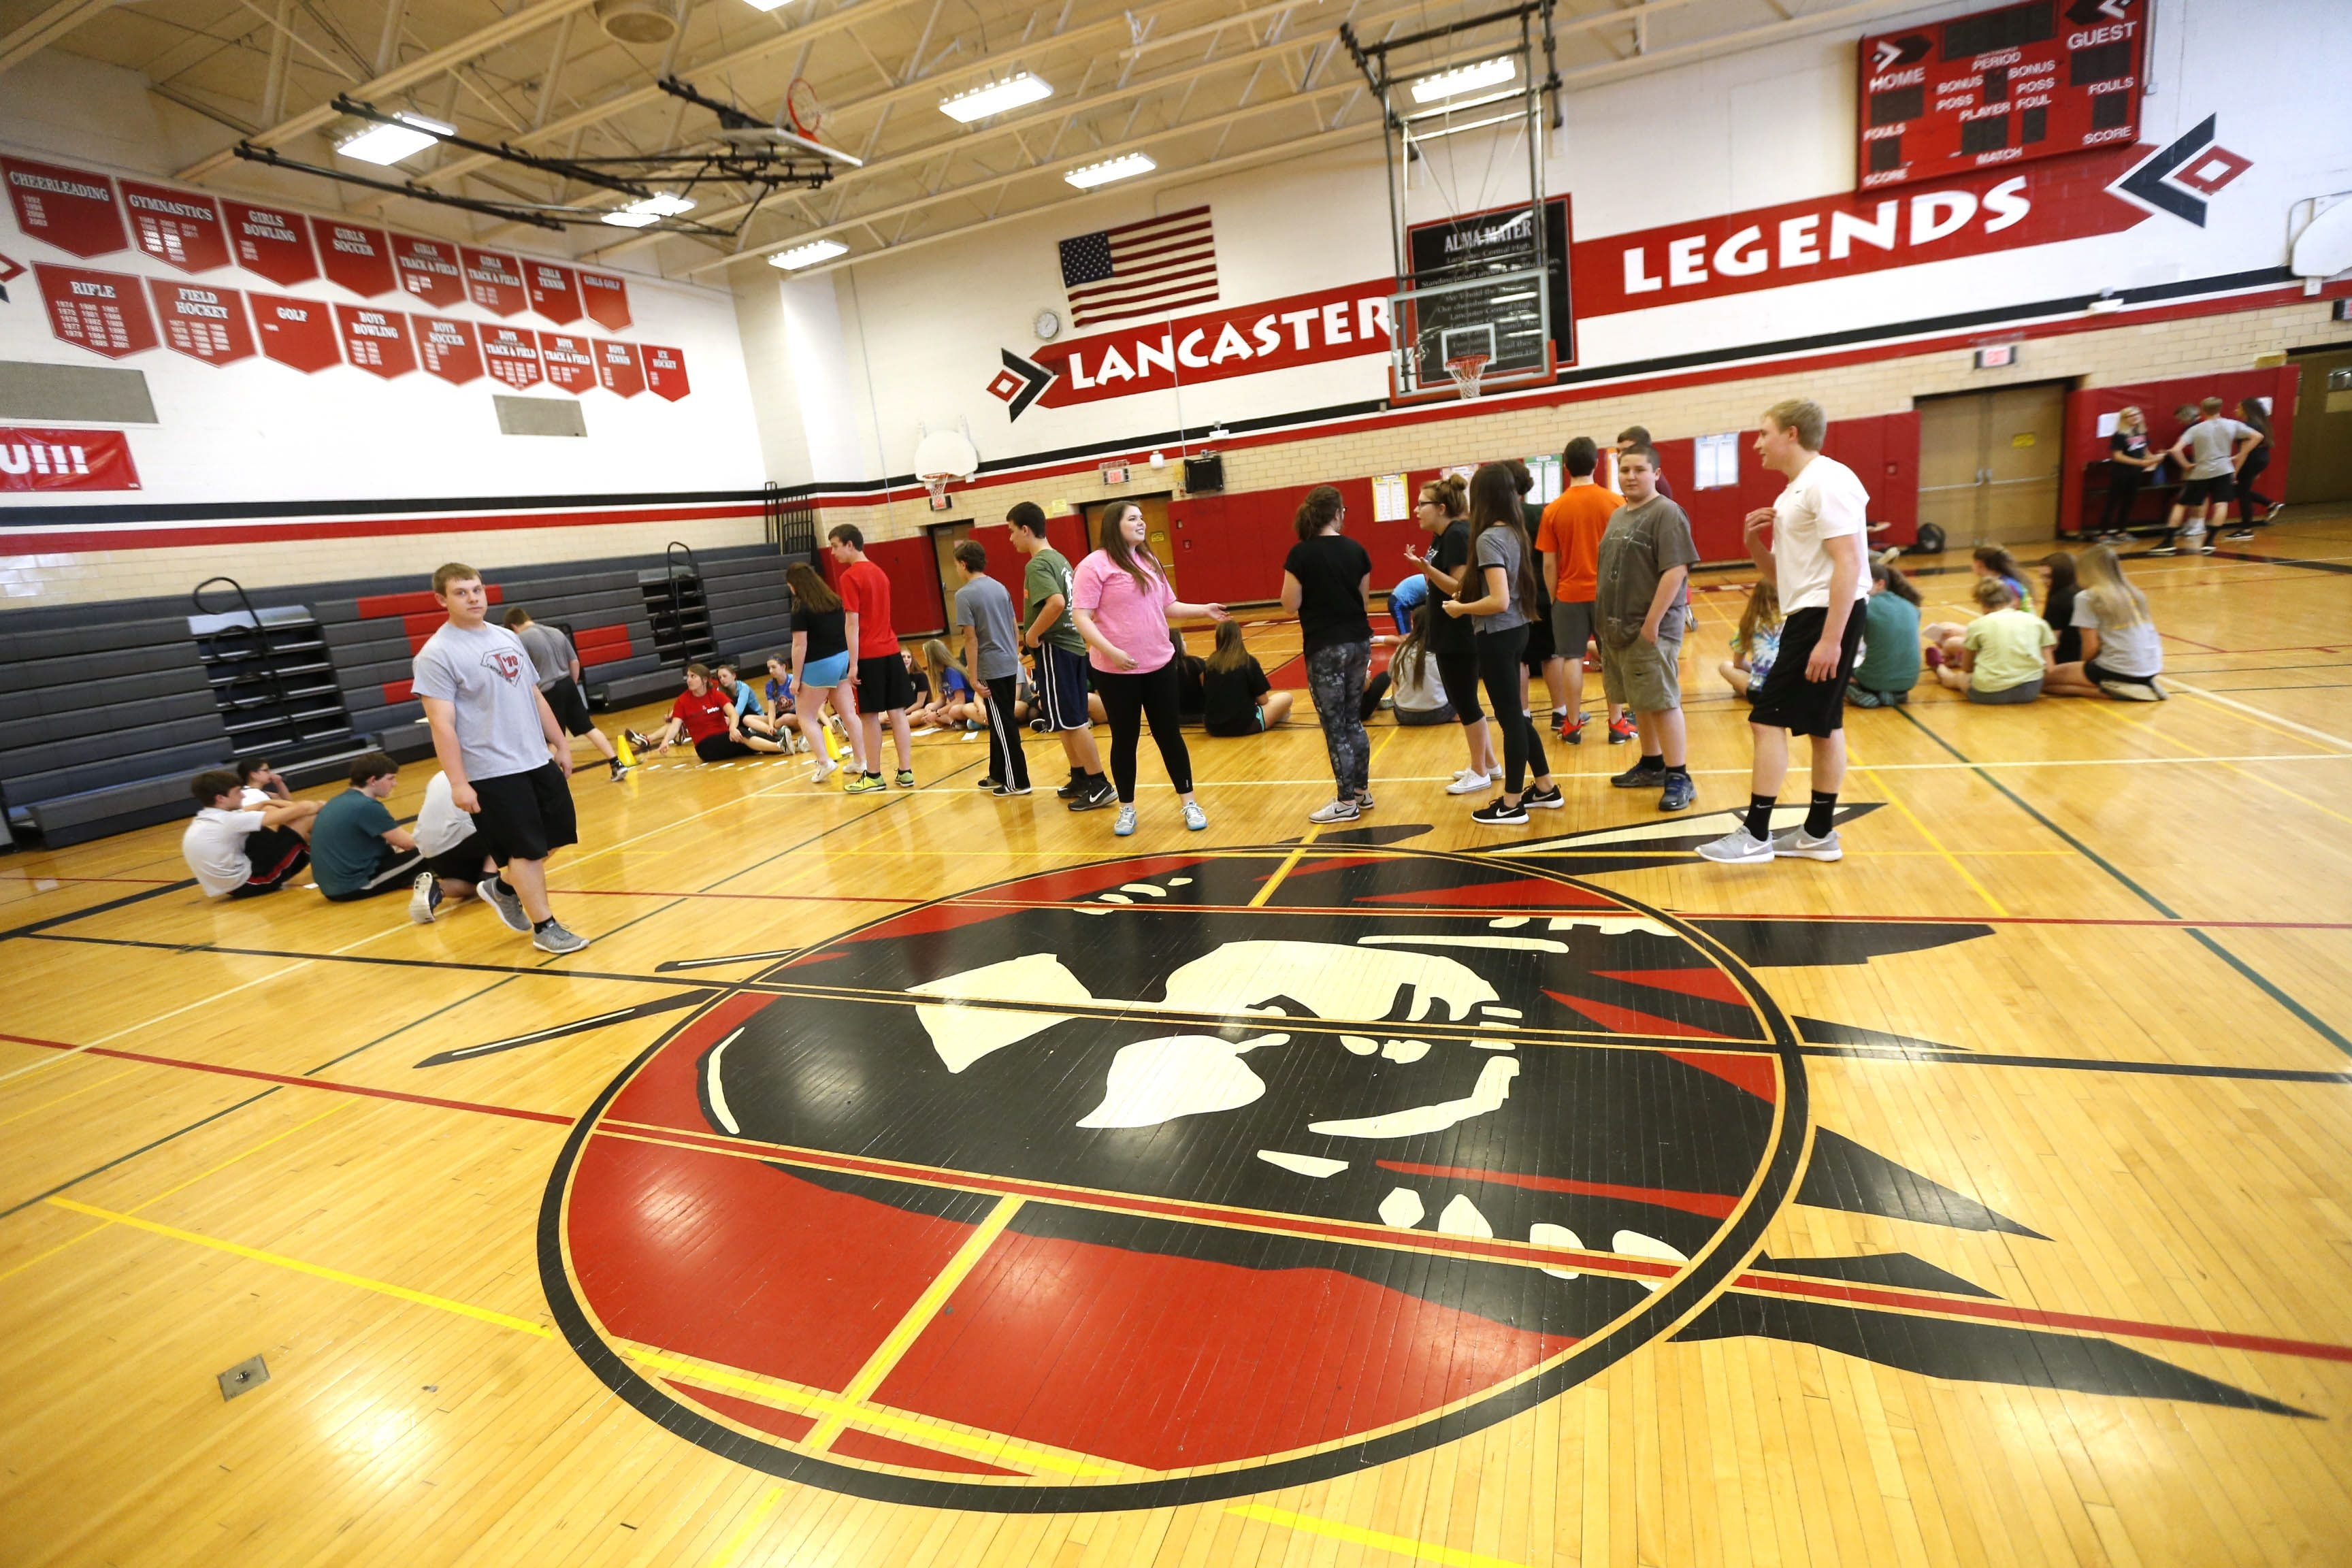 The gym at Lancaster High School has the new mascot on the wall and the old on the floor – the picture but not the name.